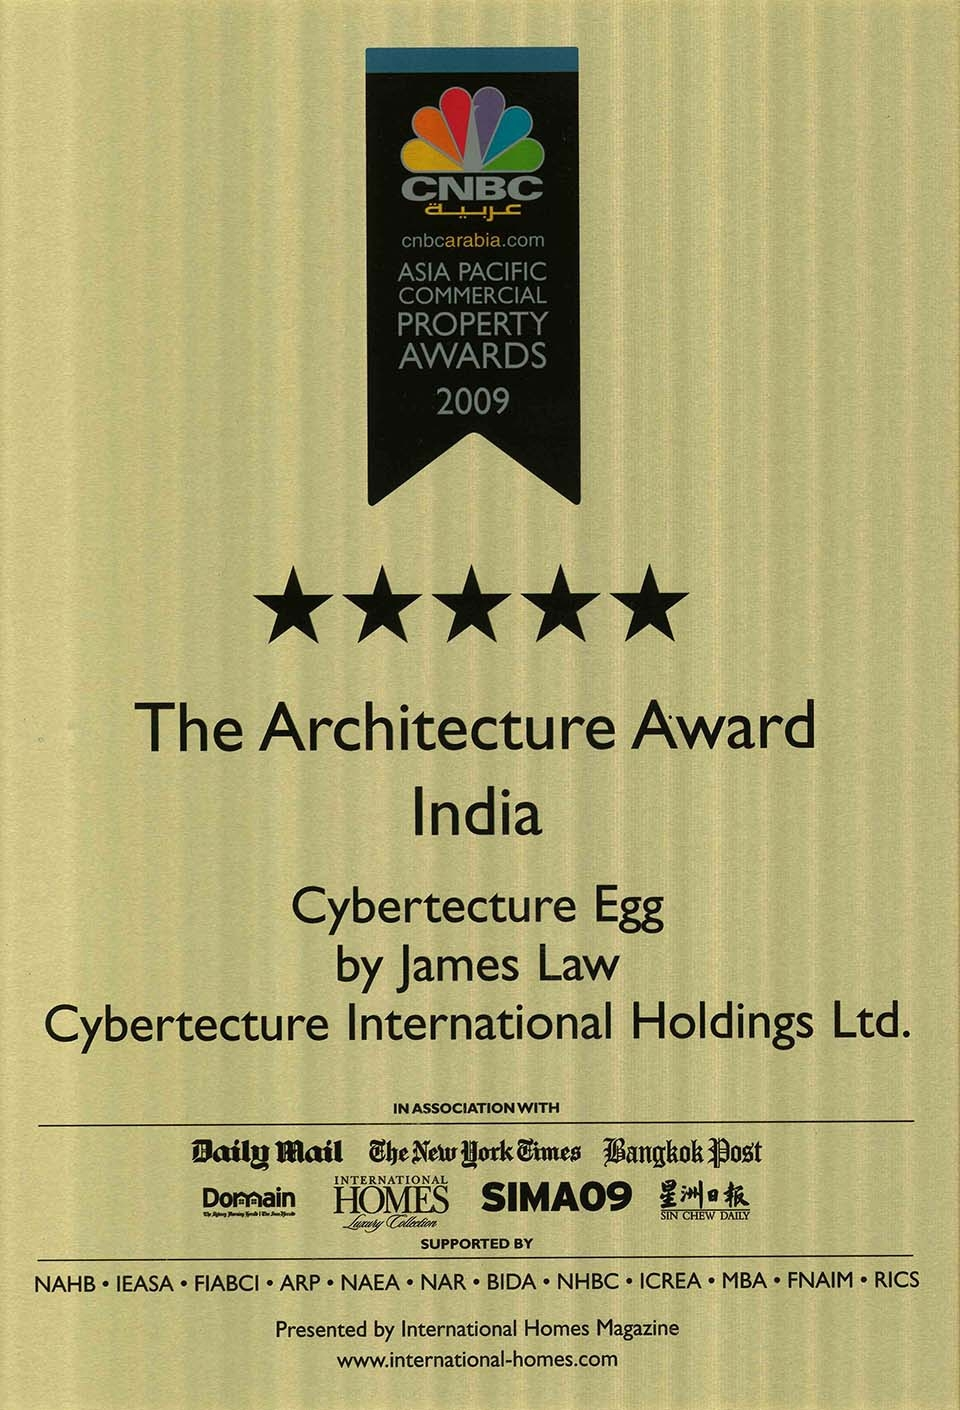 2009 CNBC Asia Pacific Commercial Property Awards - The Architecture Award India (Cybertecture Egg)